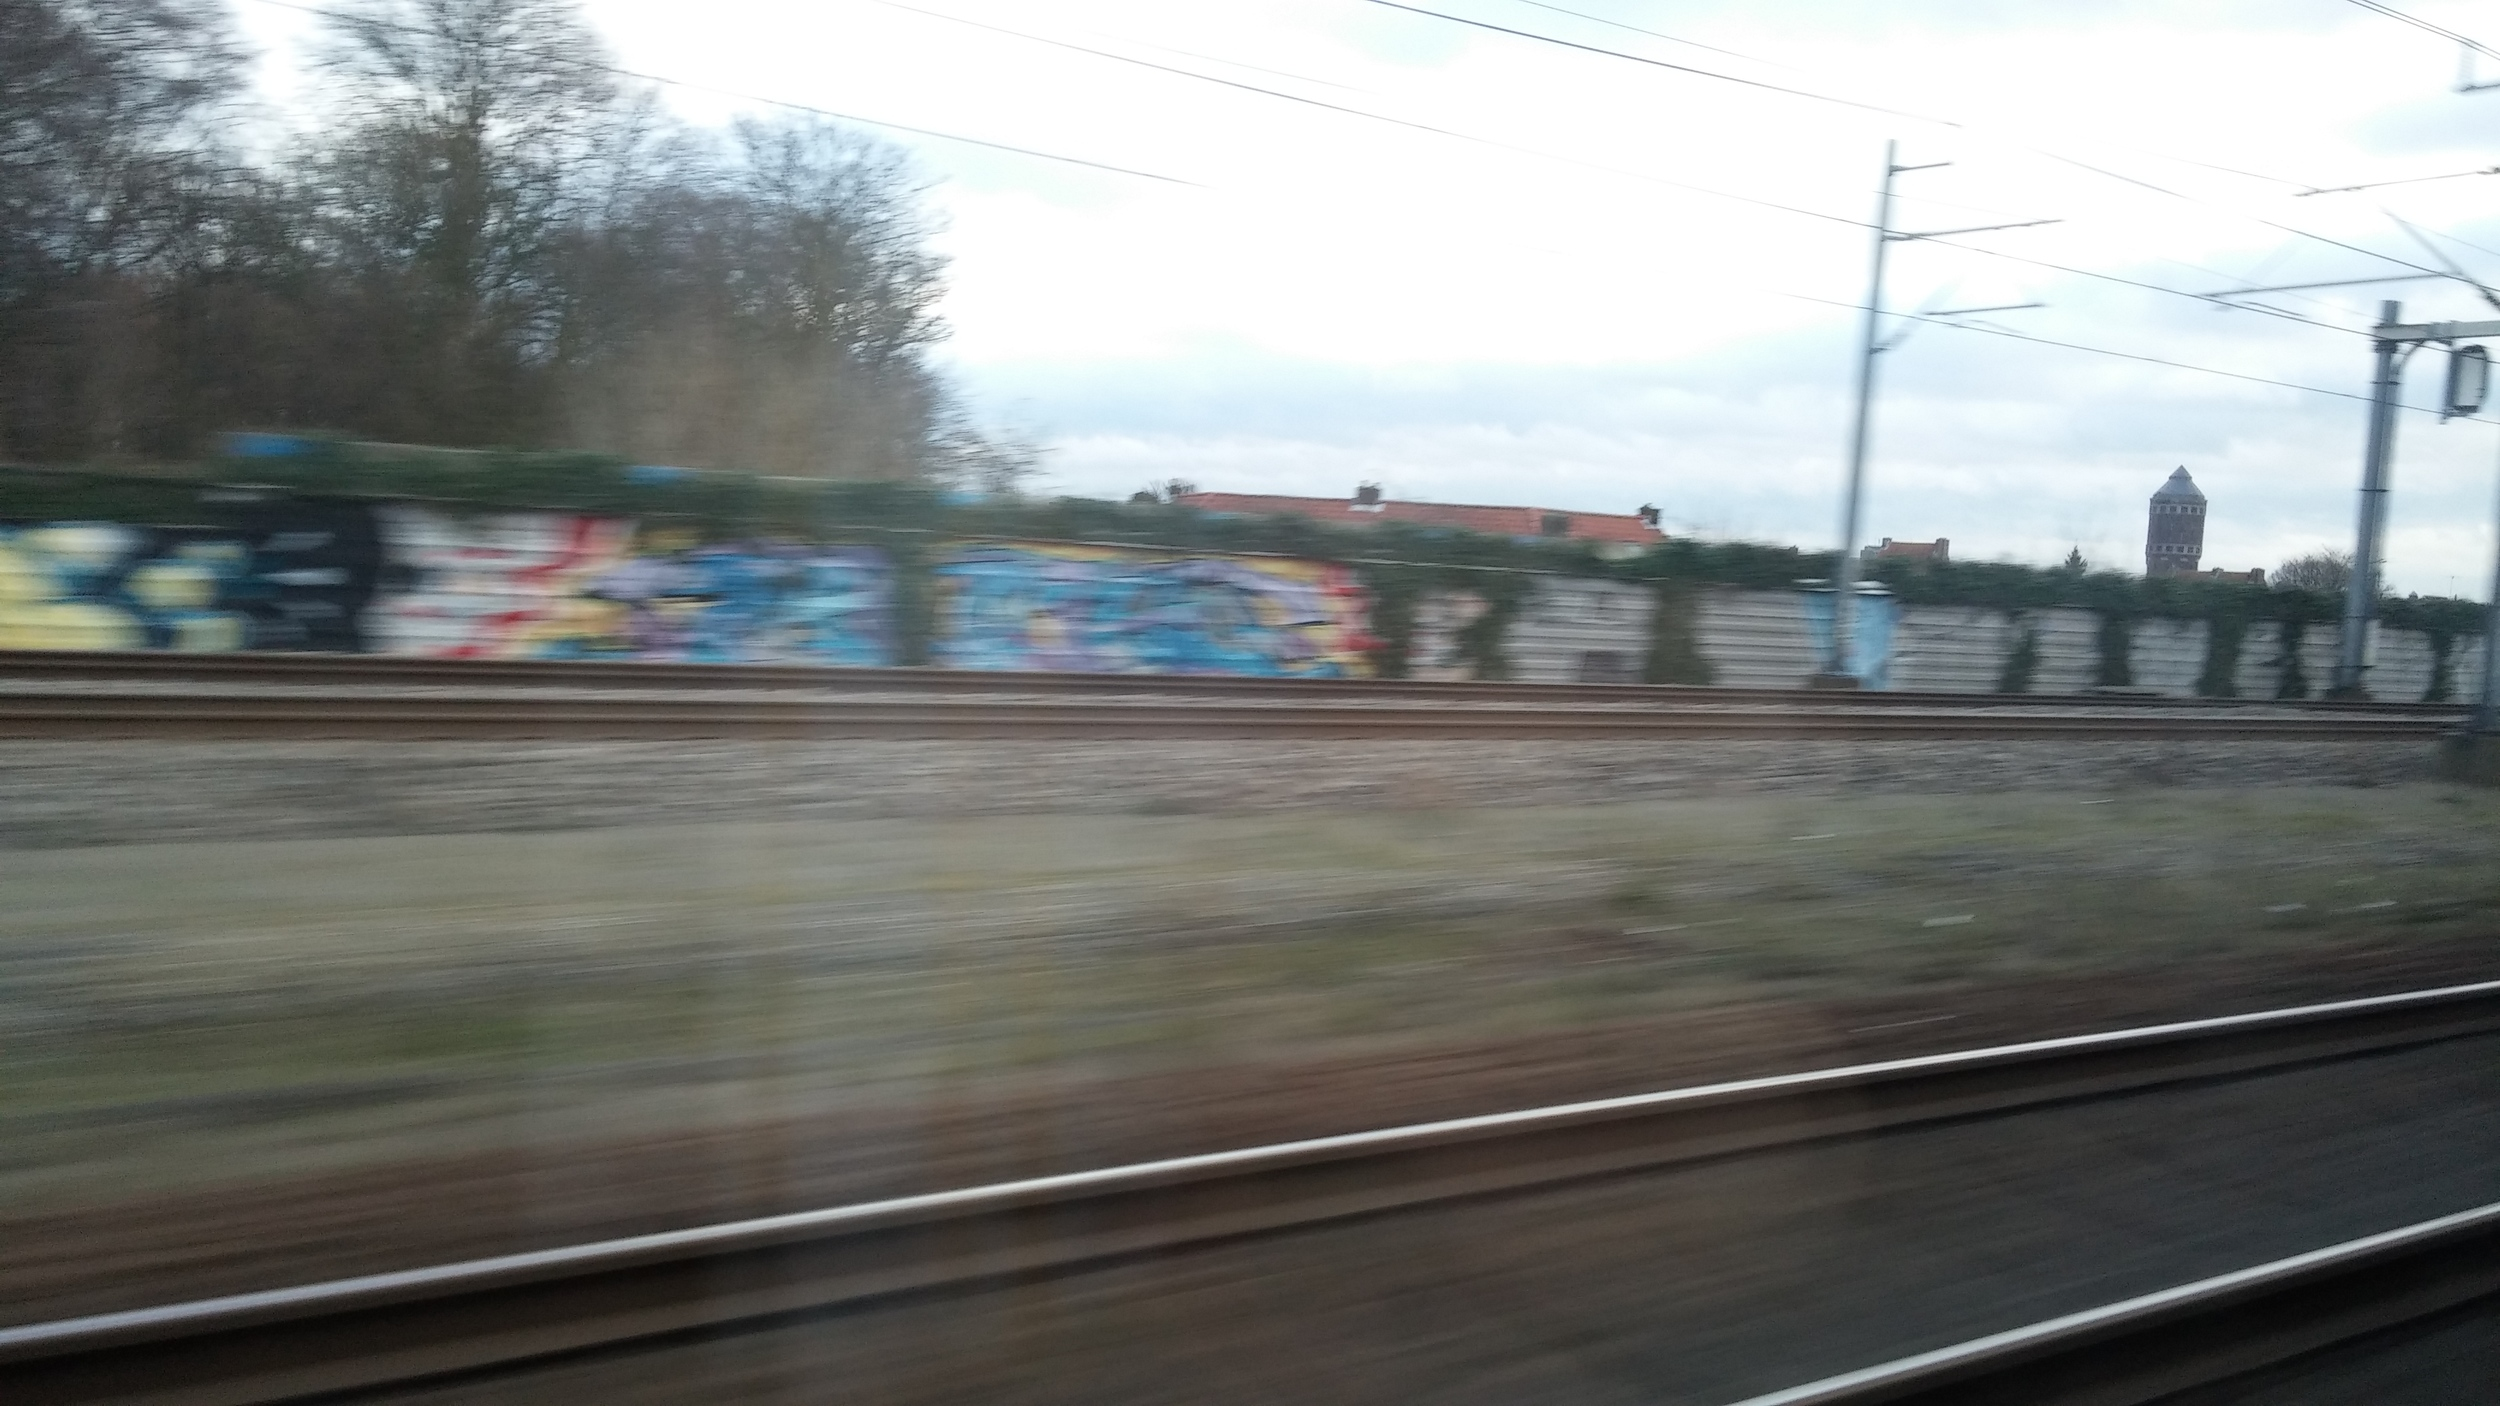 View from the train from Amsterdam to Nijmegen